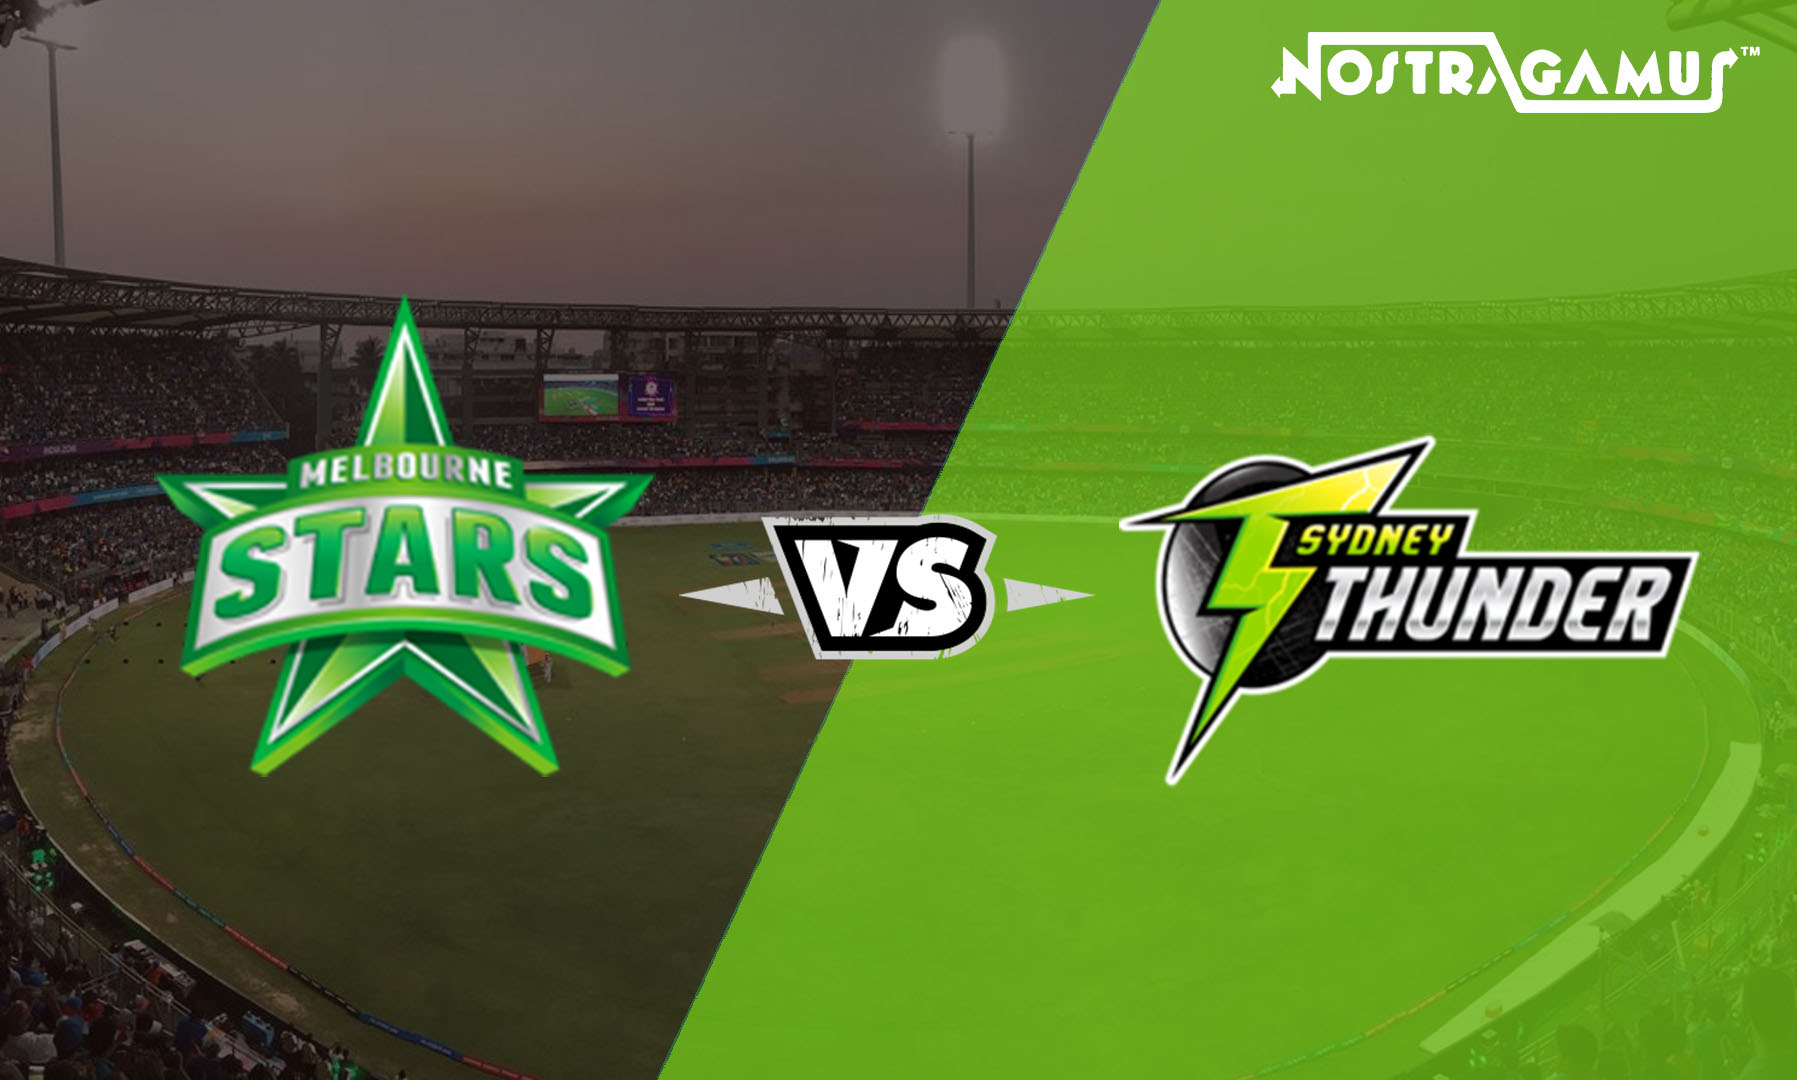 Big Bash League Predictions: Melbourne Stars vs Sydney Thunder